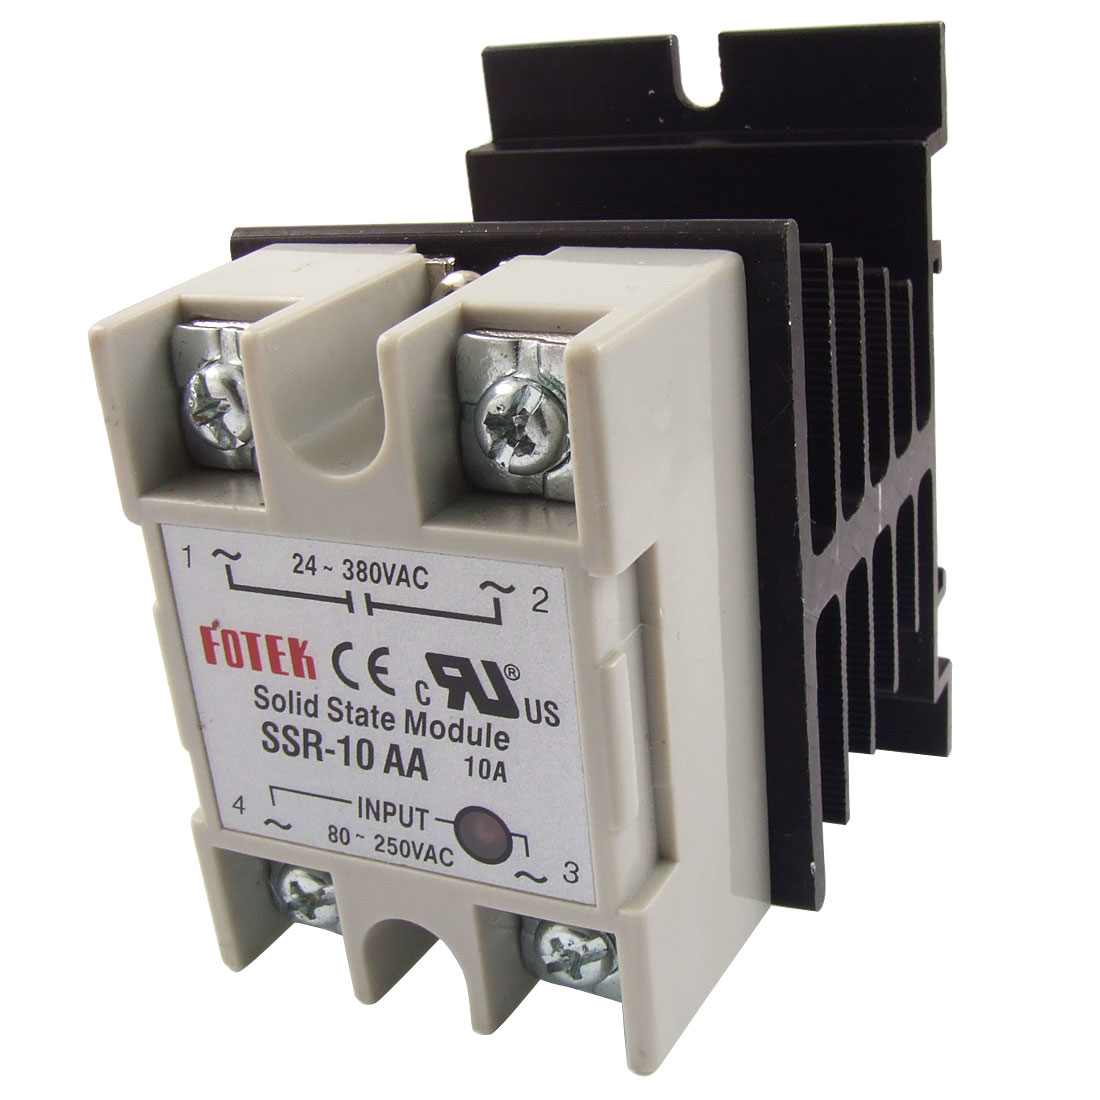 Single Phase Solid State Relay SSR-10AA 10A AC-AC 8-250V 24-380V w heat sink